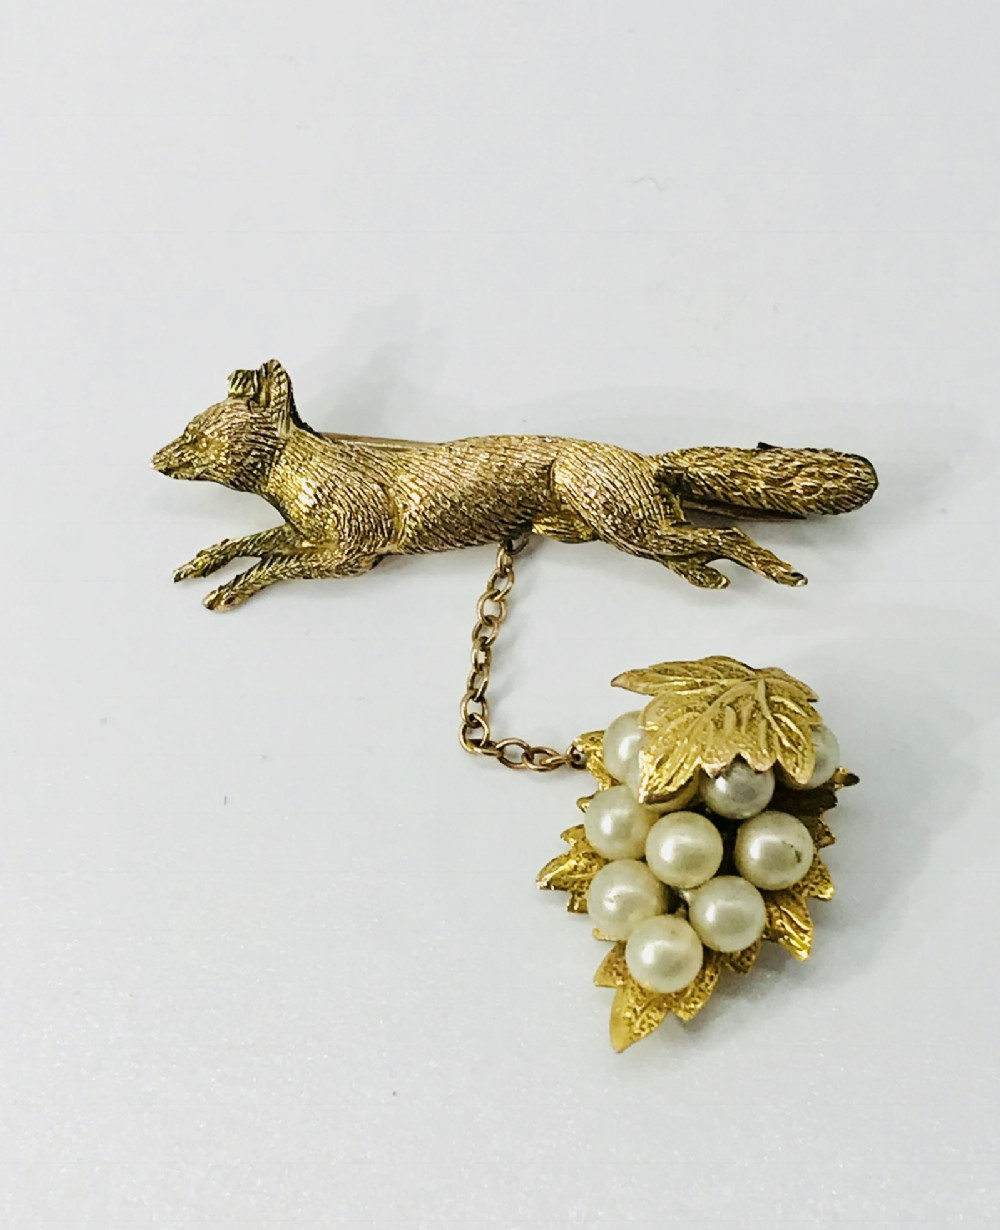 charming late victorian 9ct gold fox brooch with gold and seed pearl grapes c1880